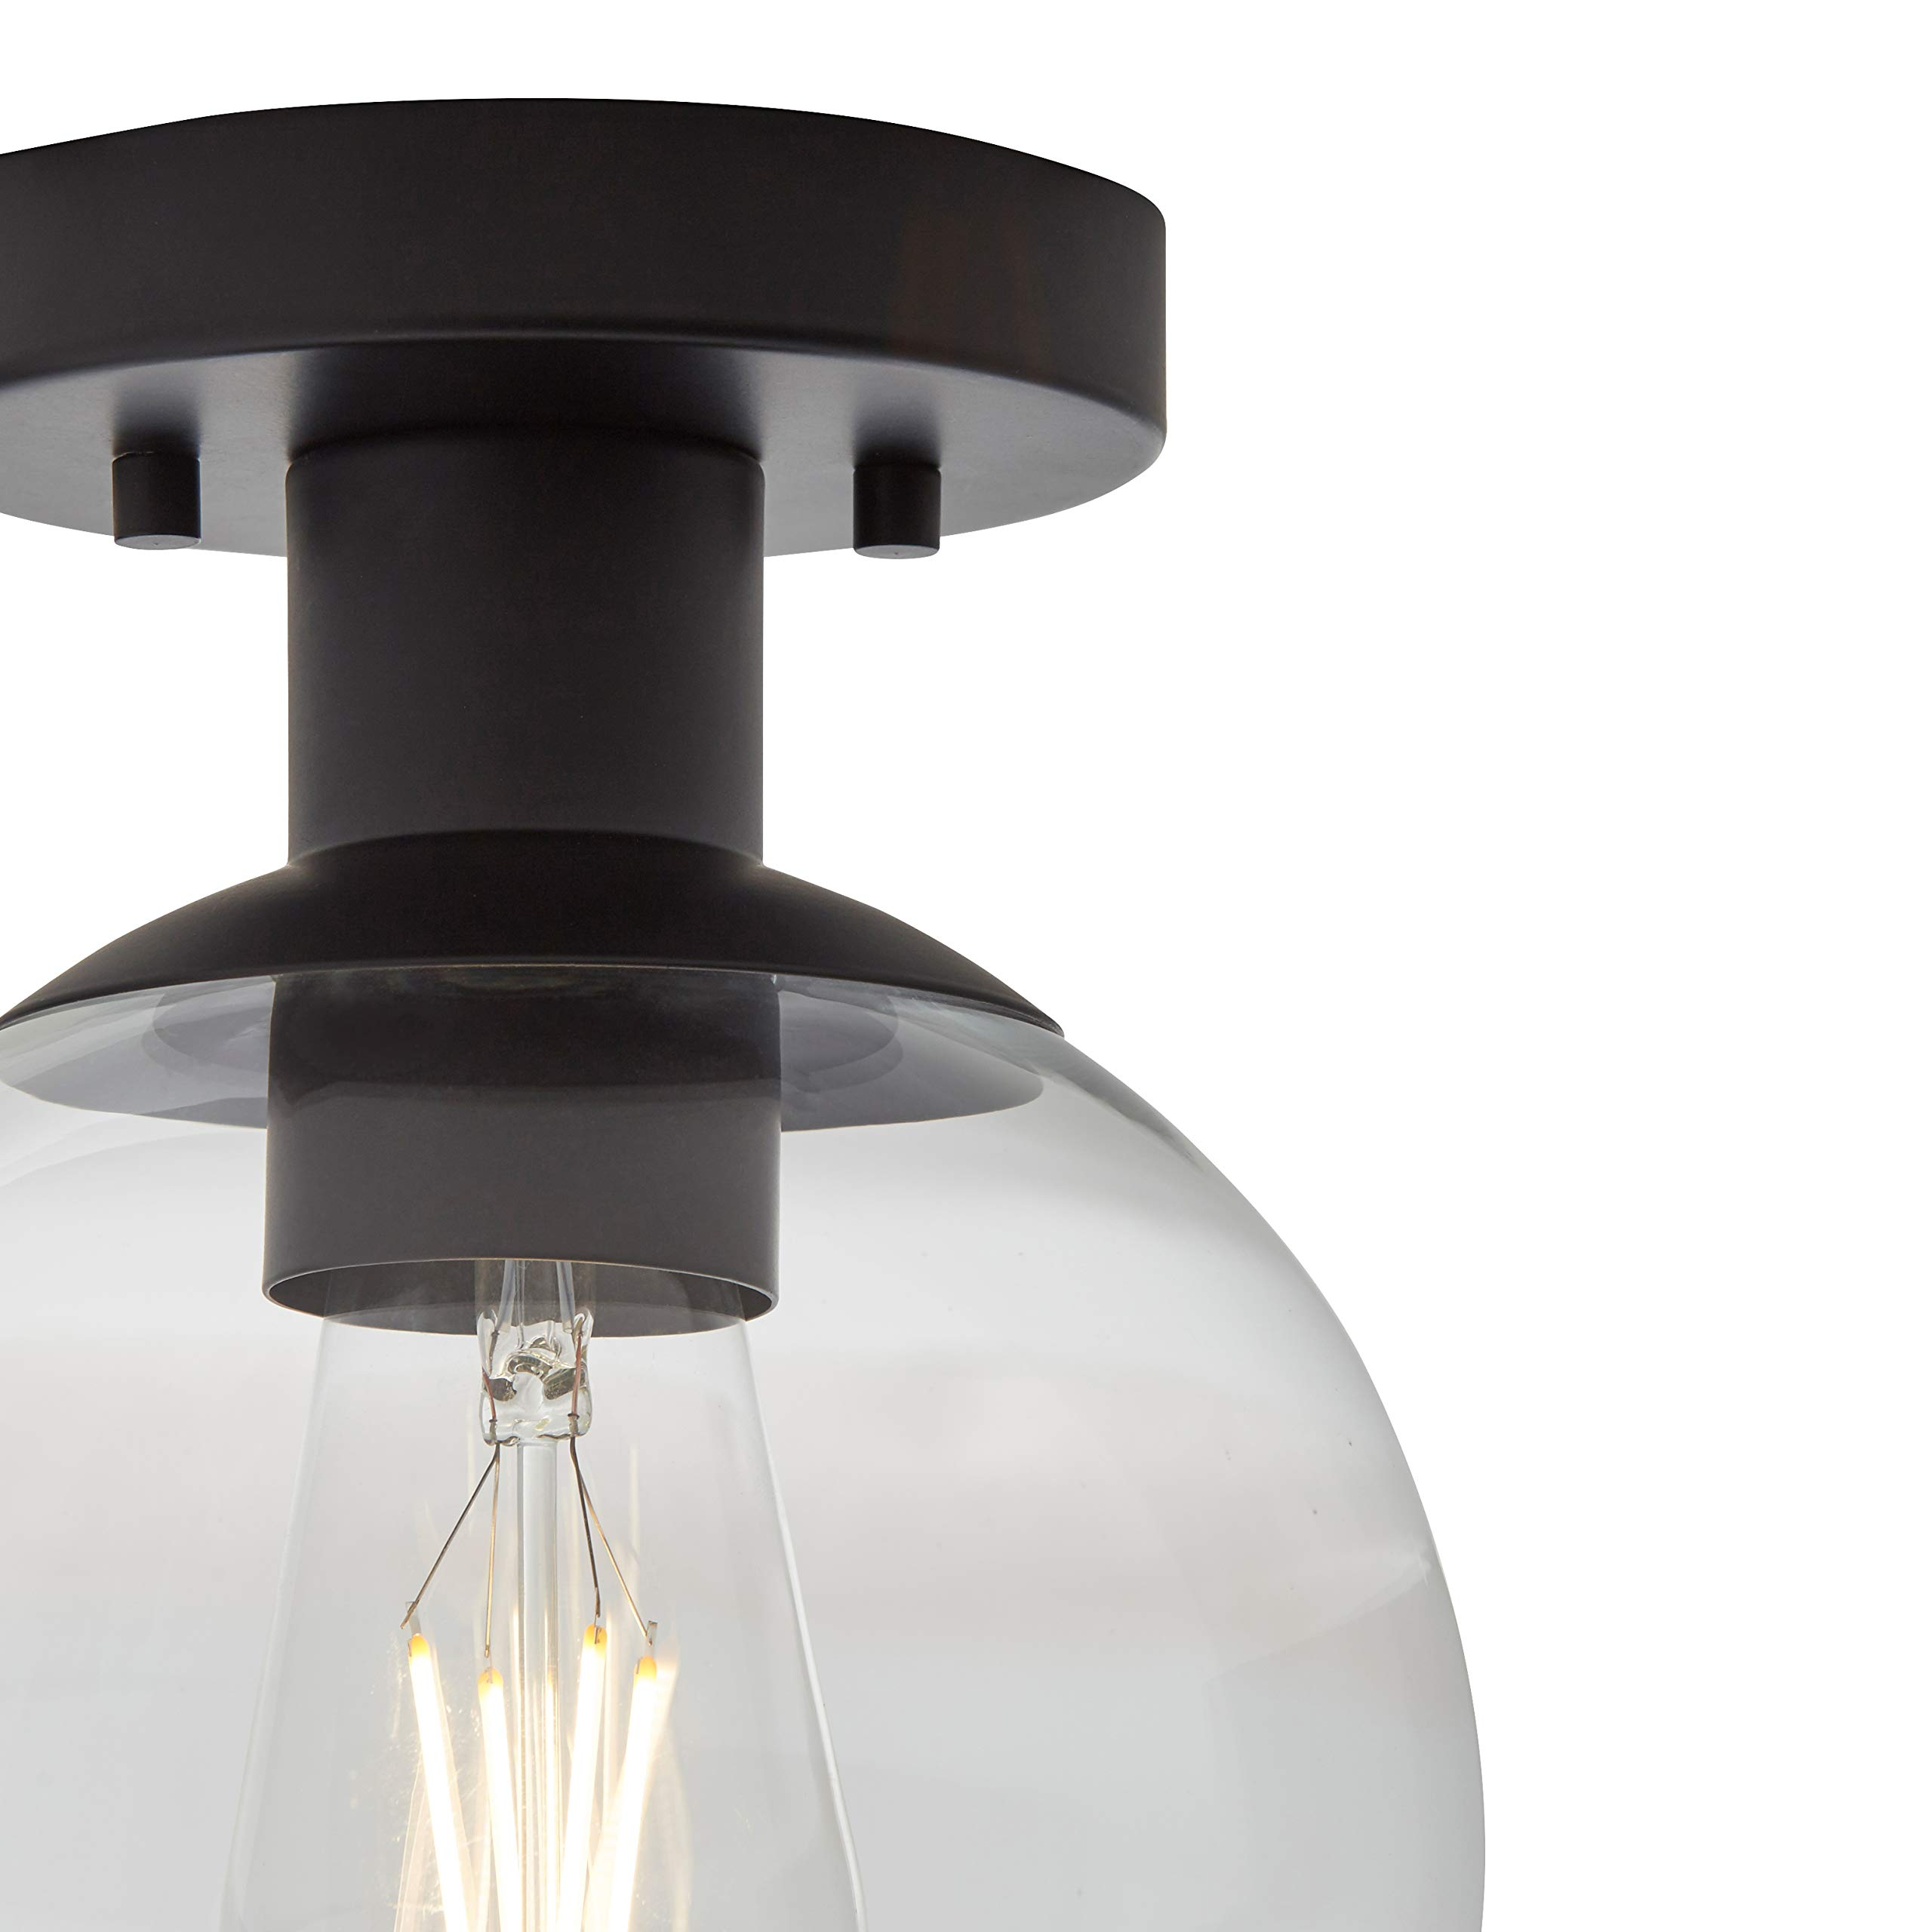 Rivet Mid-Century Flush-Mount with Bulb, 8.875''H, Black by Rivet (Image #4)